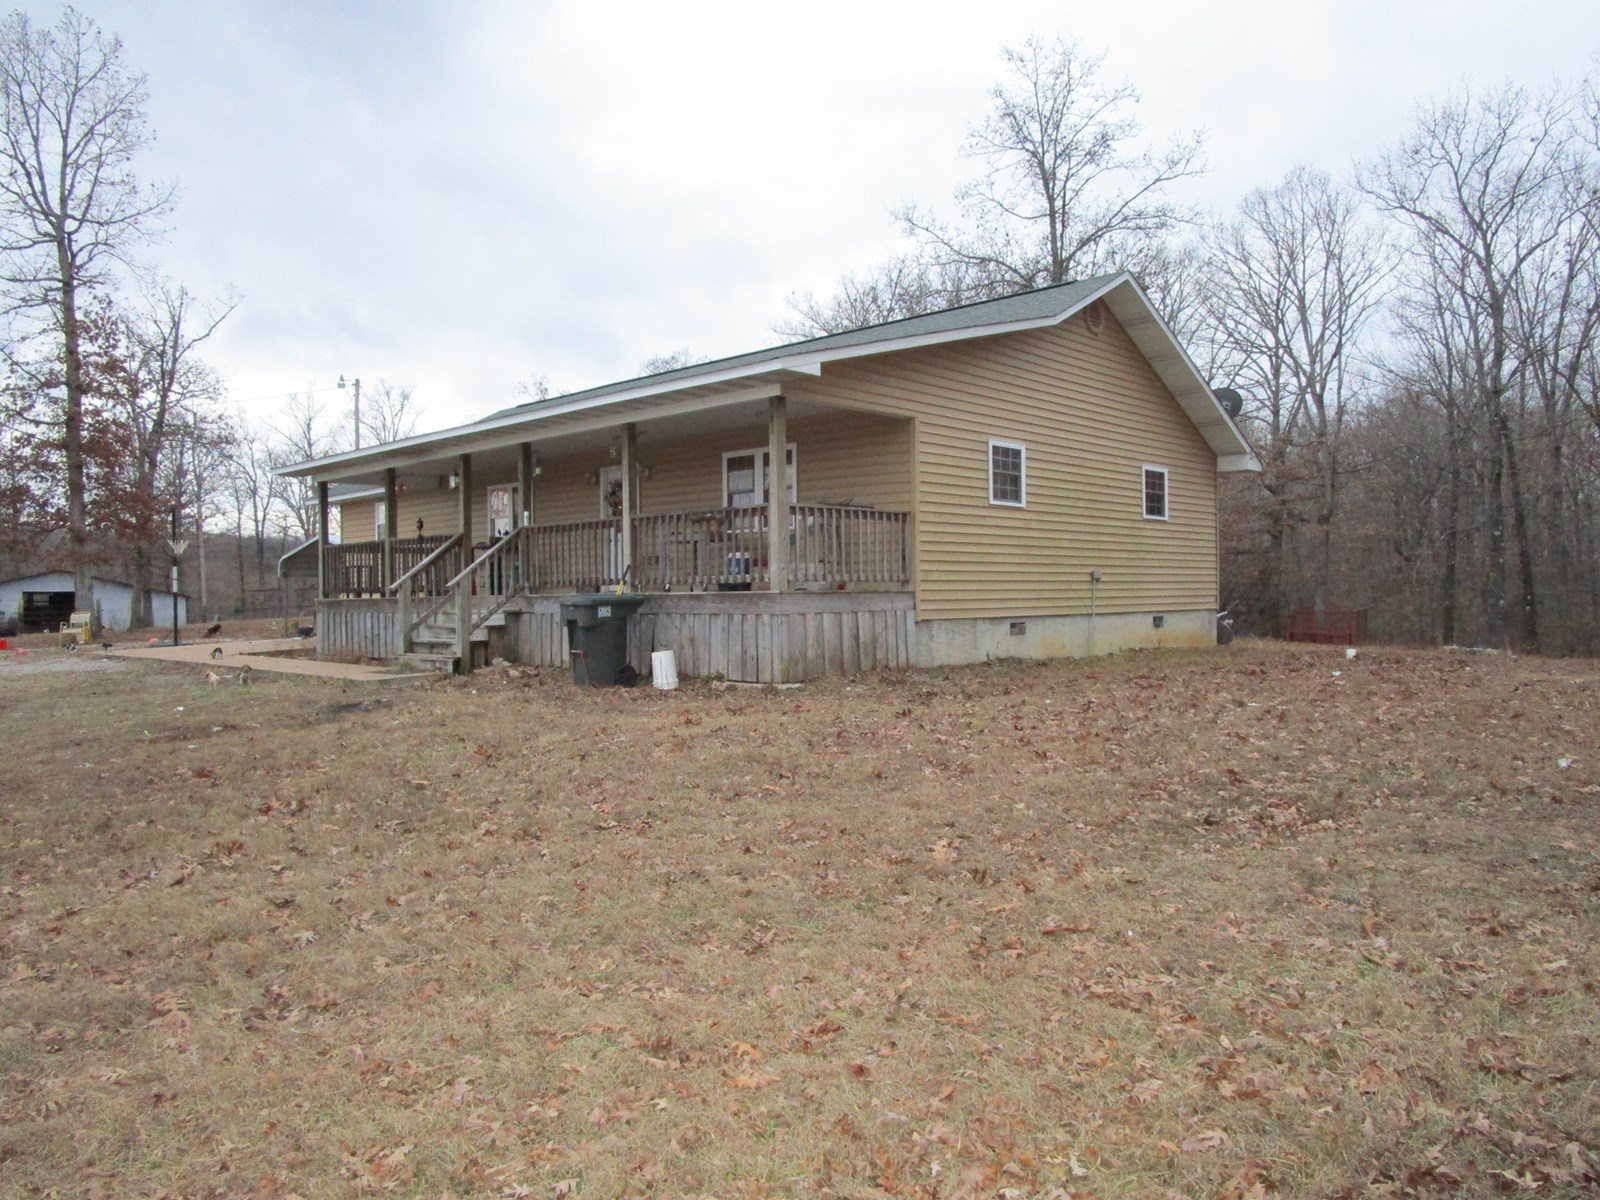 Southern Missouri Farm for Sale - Hobby Farm - Country Home